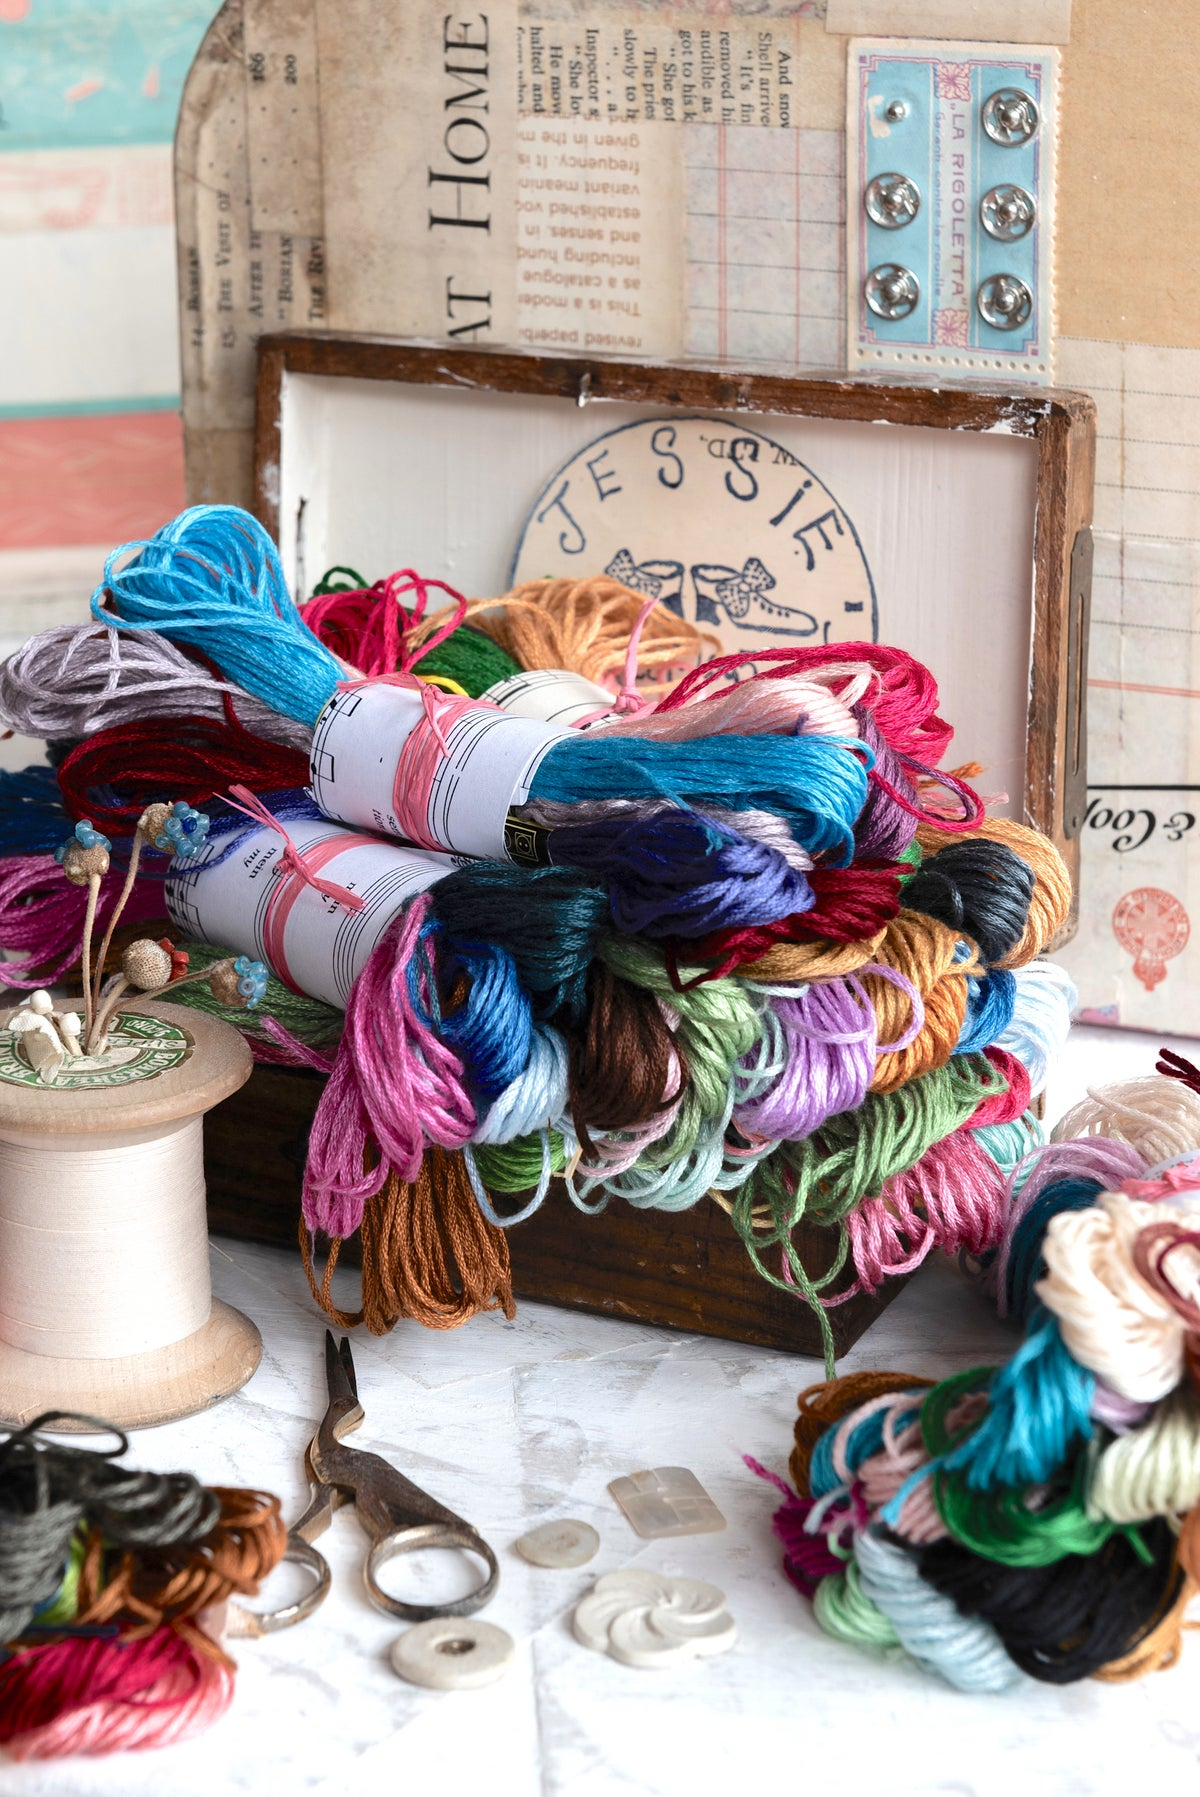 Image of Bundles of assorted embroidery floss skeins